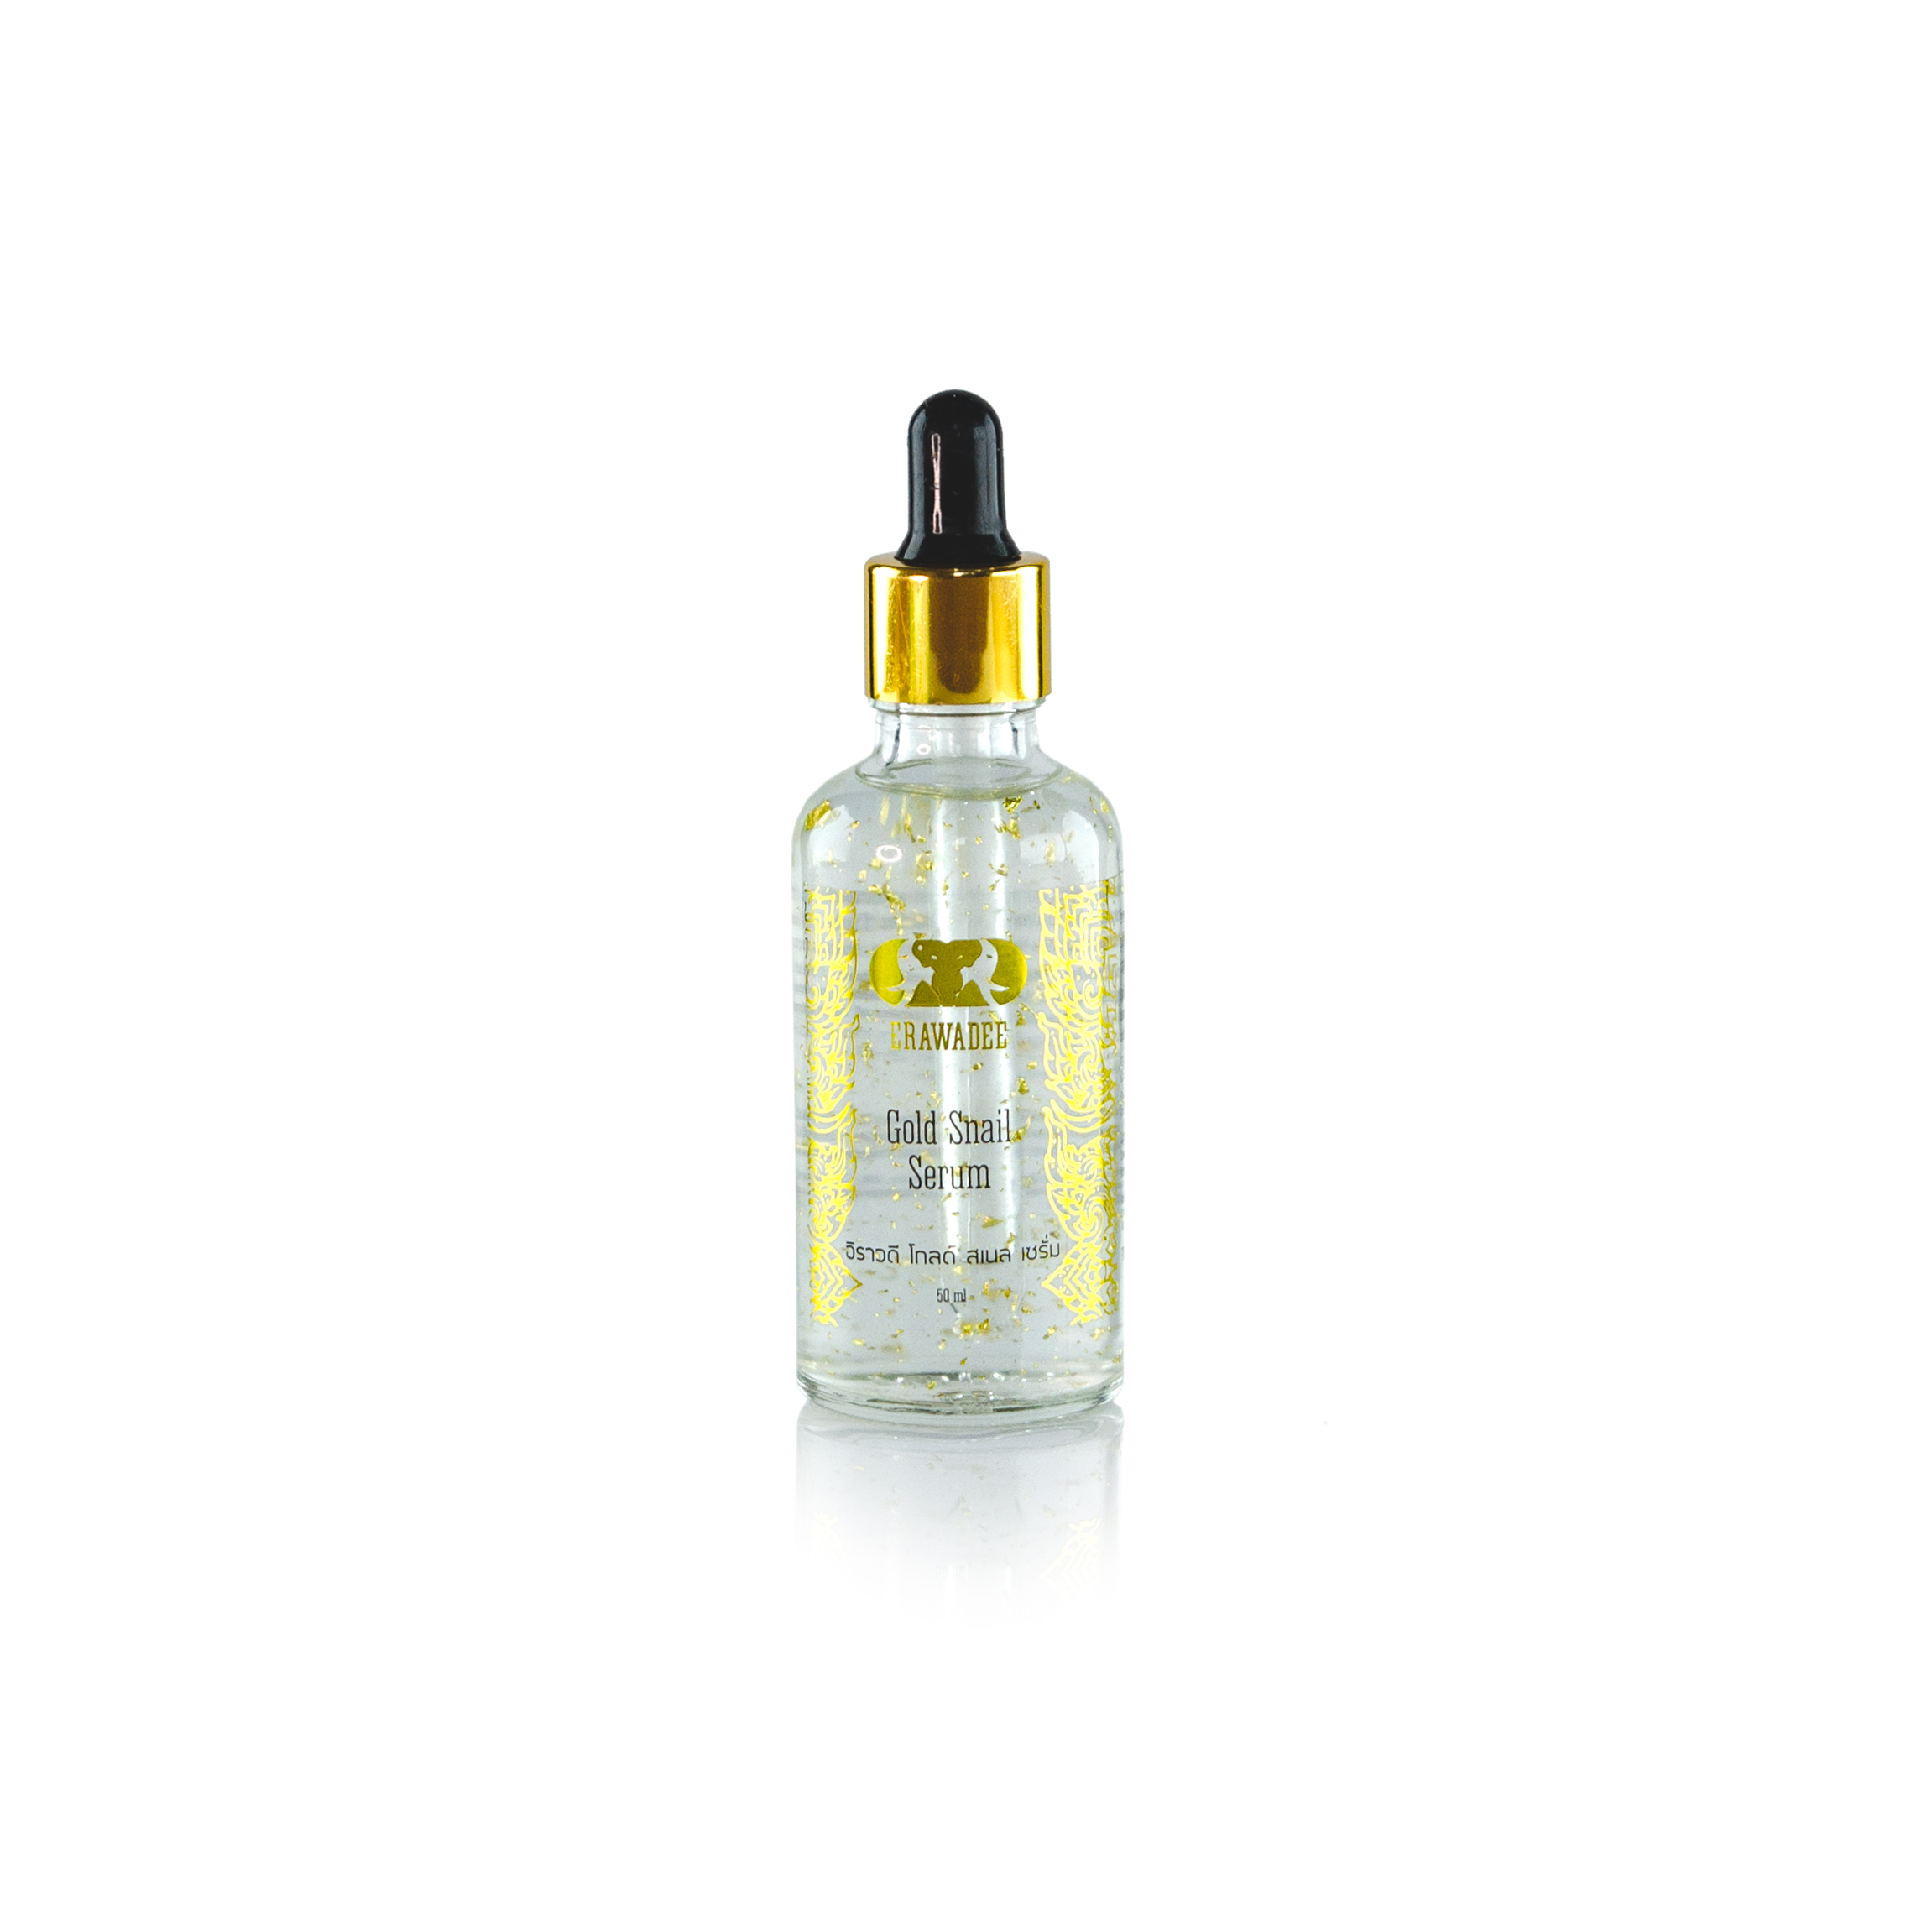 Gold Snail Serum